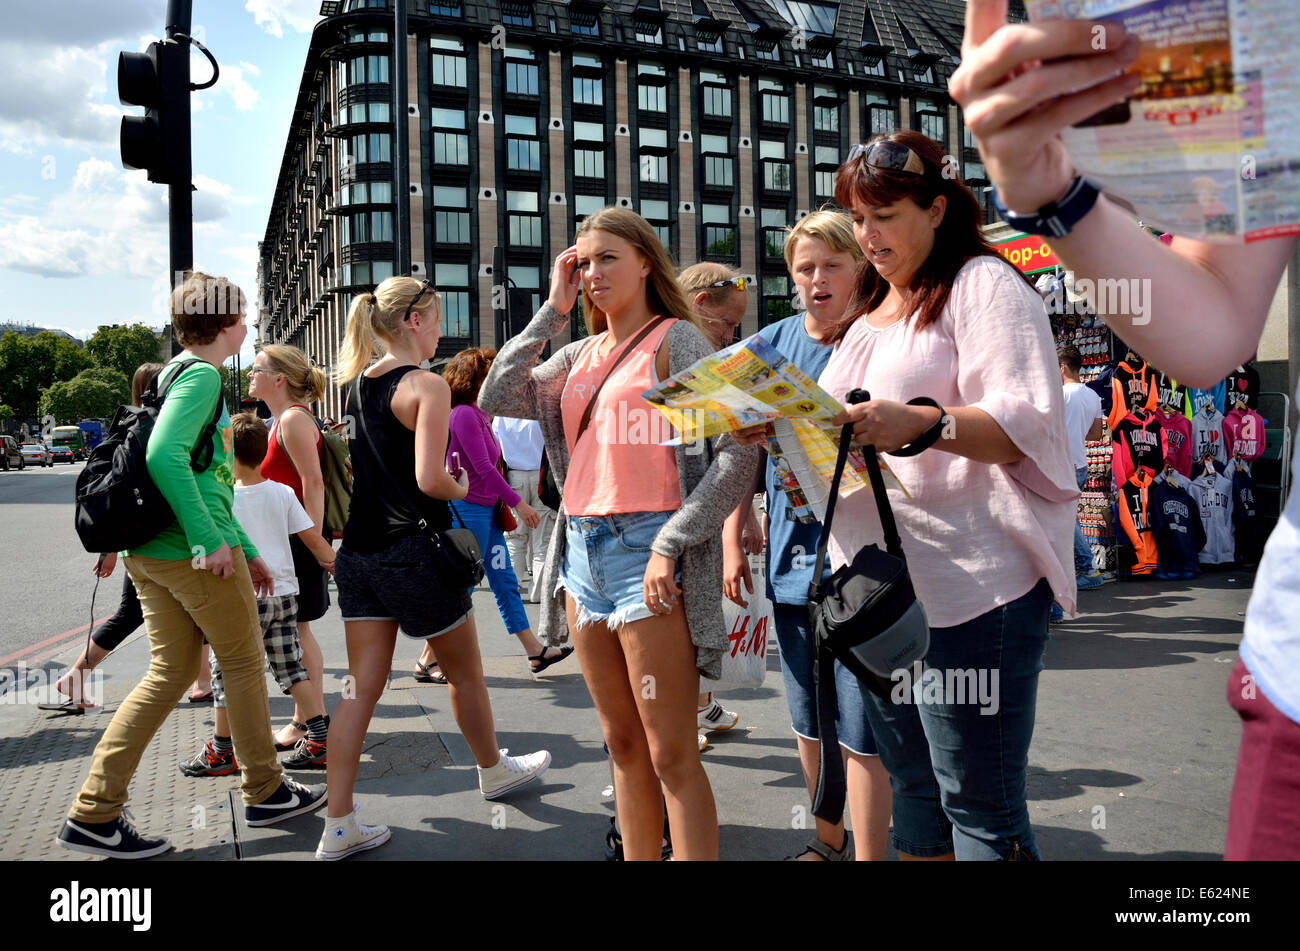 London, England, UK. Family looking at a map on Westminster Bridge - Portcullis House behind - Stock Image